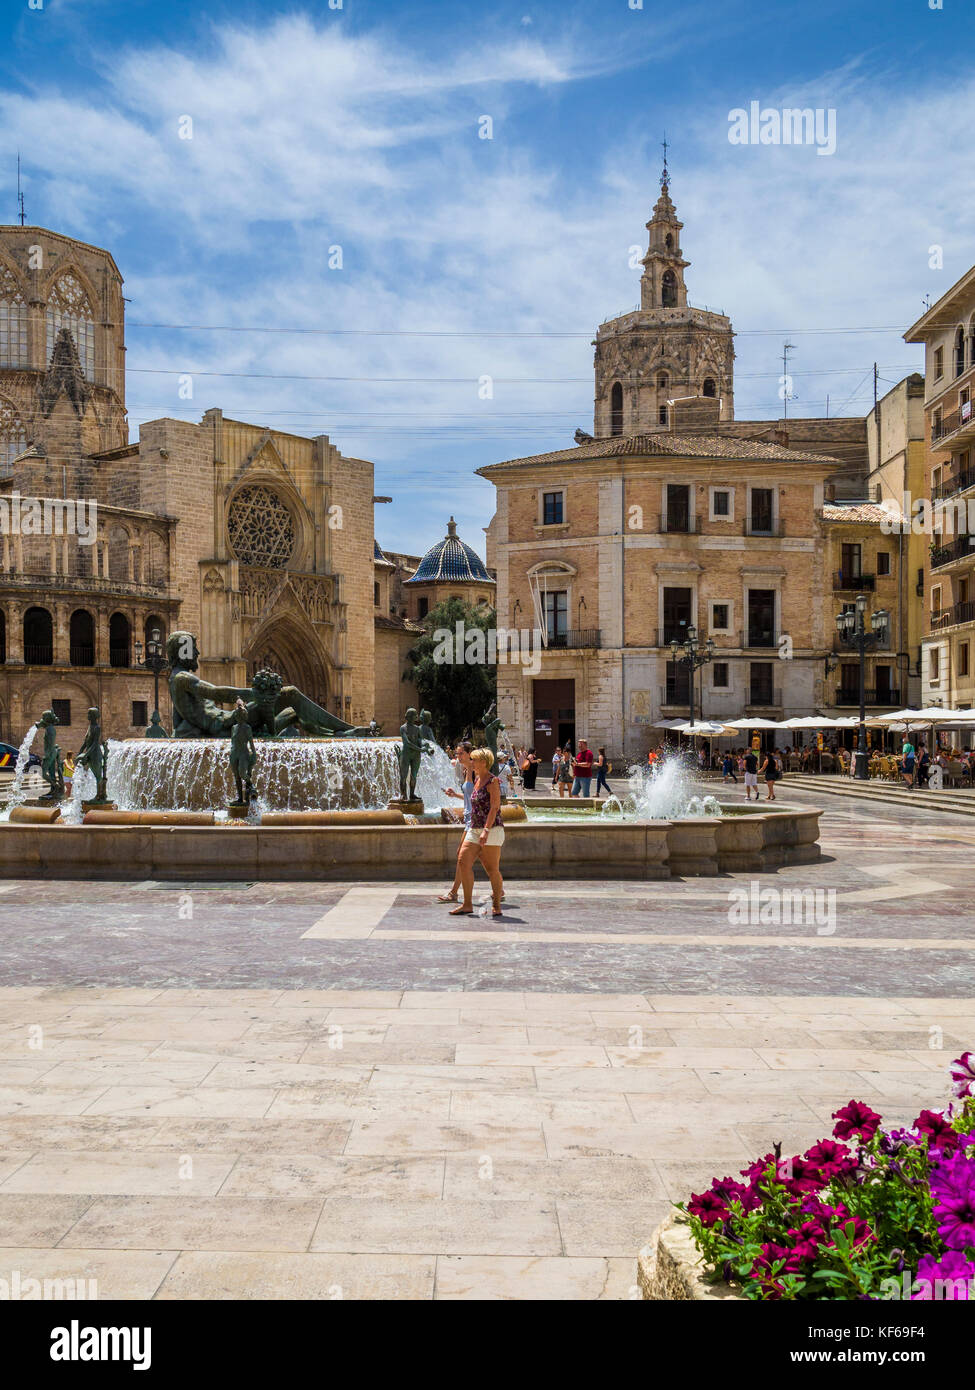 Two people walking by Turia fountain in the old town with the Cathedral (left) and it's tower, el Miguelete (centre) Stock Photo